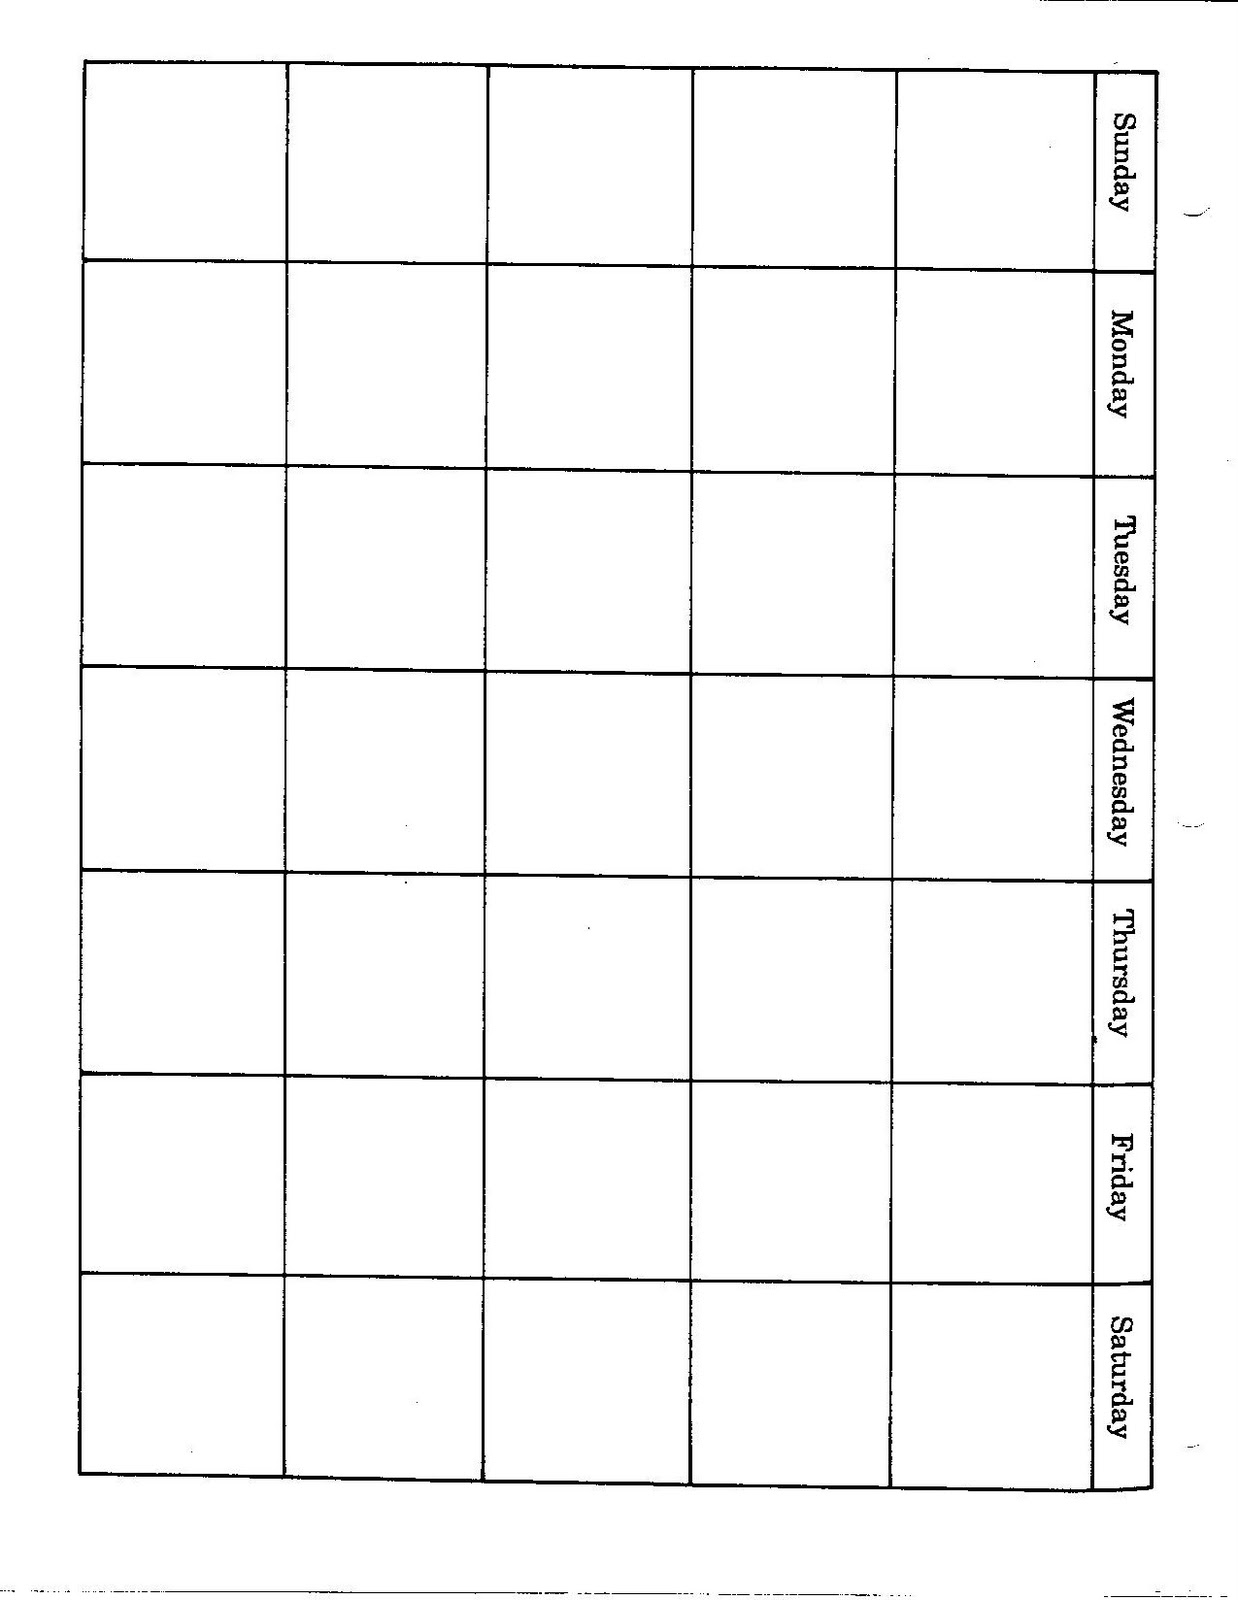 Blank Calendar Page : Connie s file cabinet monthly blank calendar pages for a year